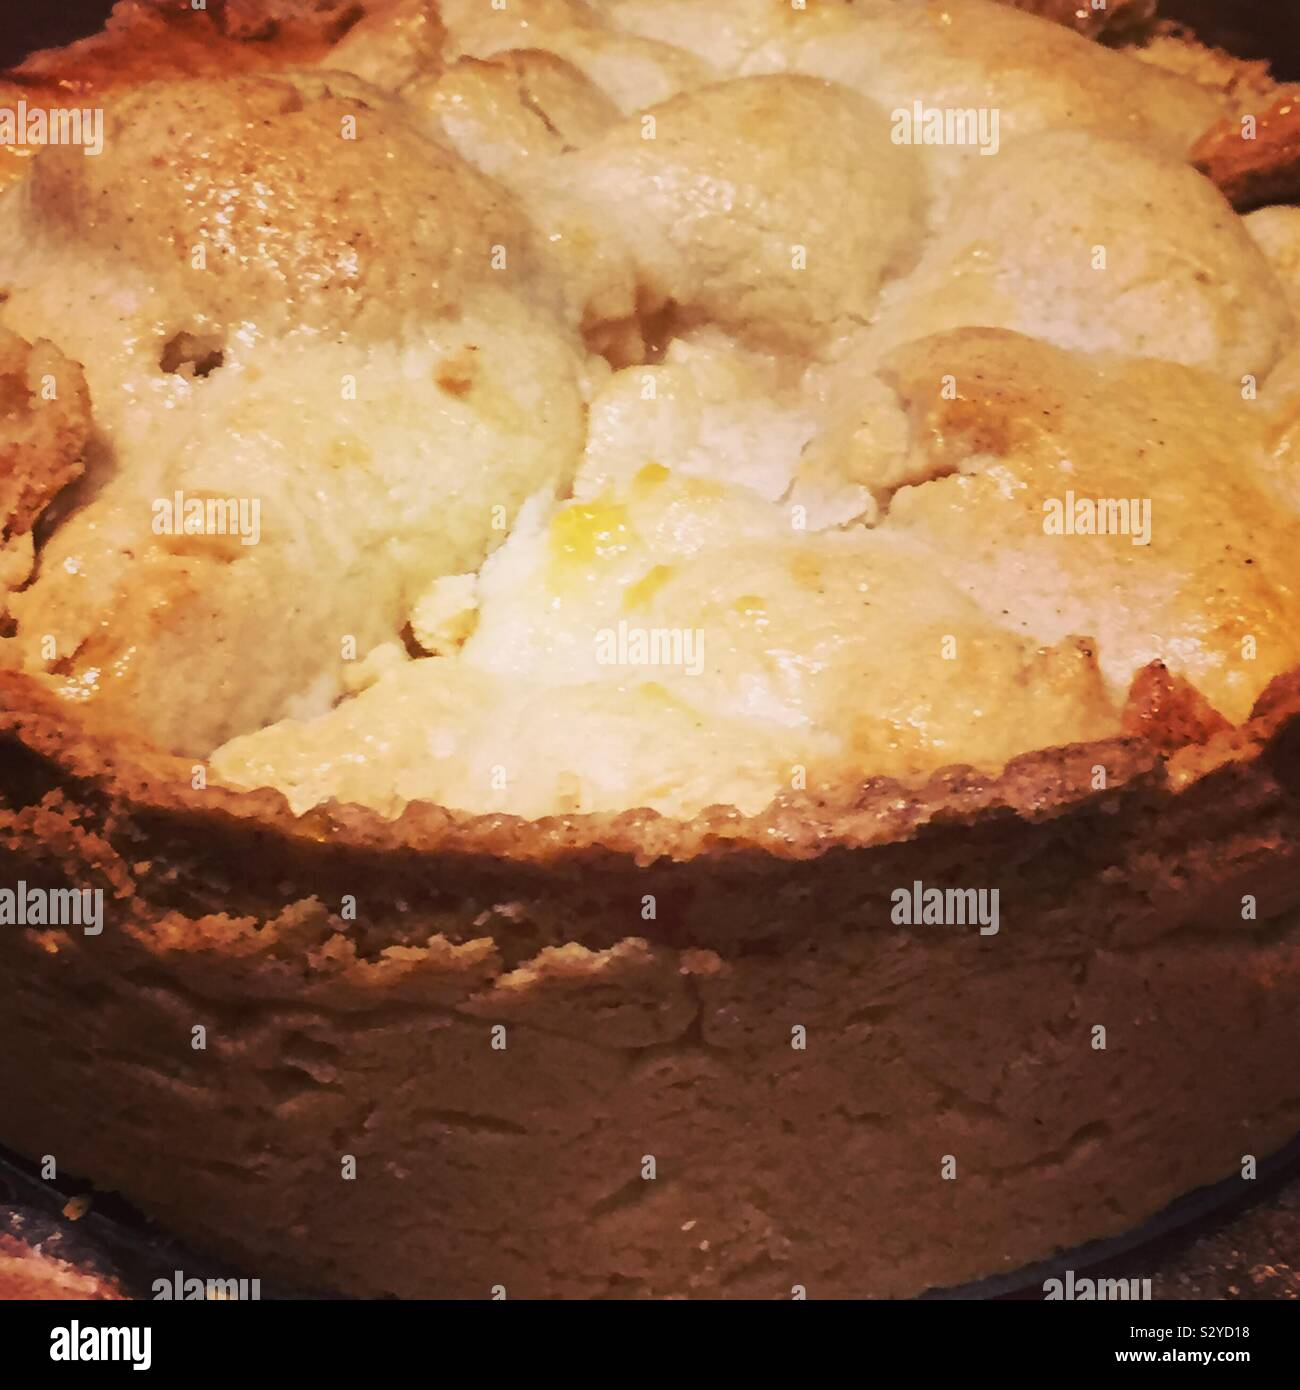 close-up-of-the-crust-on-an-apple-pie-S2